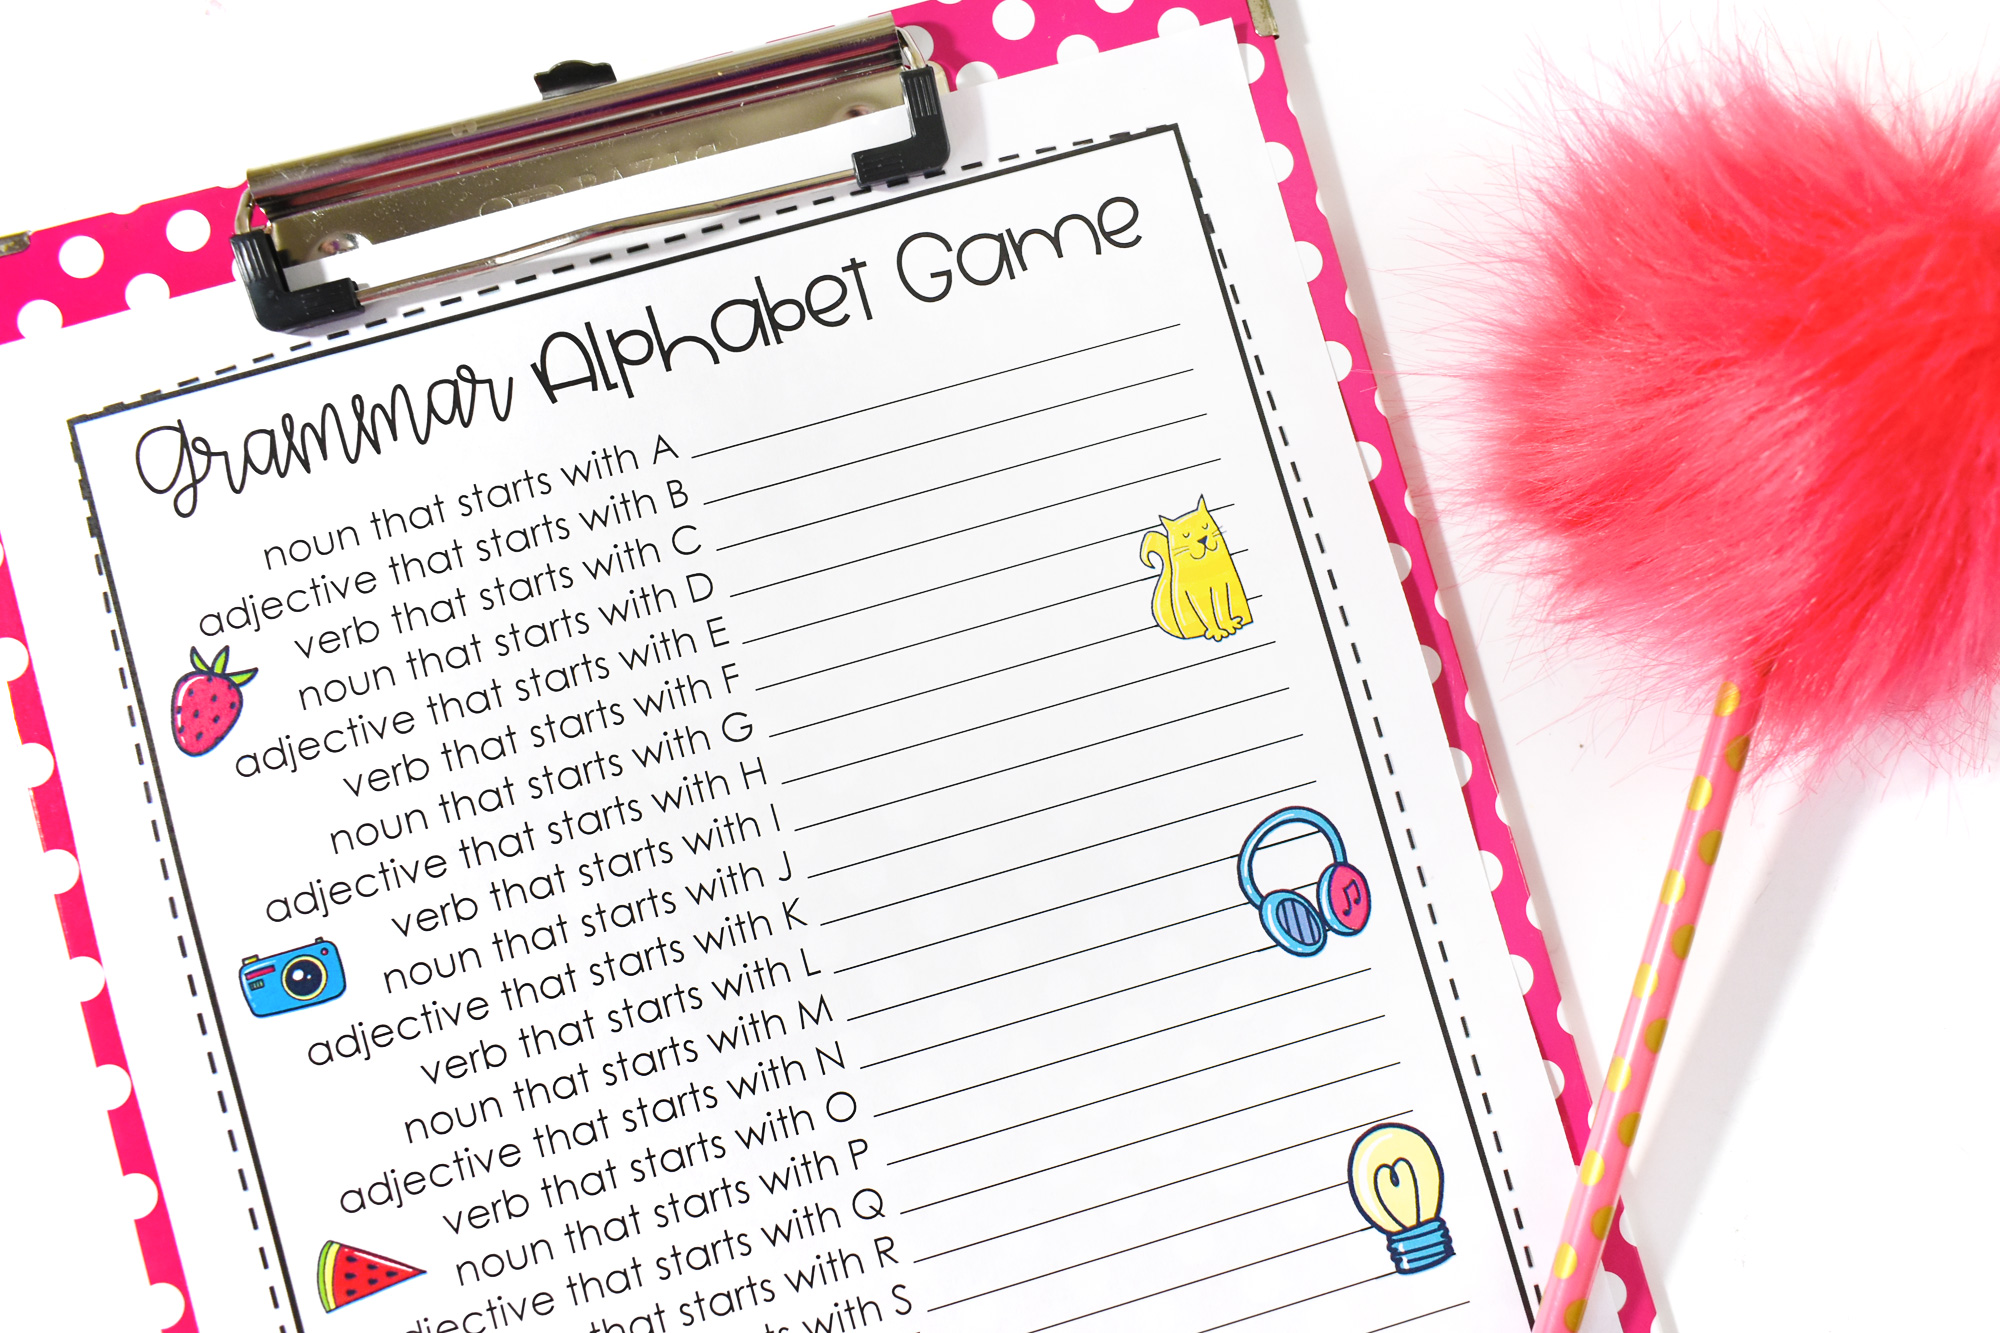 National Grammar Day Printable Game | HolidayPrintables.net #printables #grammar #printablegrammar #grammargame #alphabetgame #holidayprintables #weloveprintables